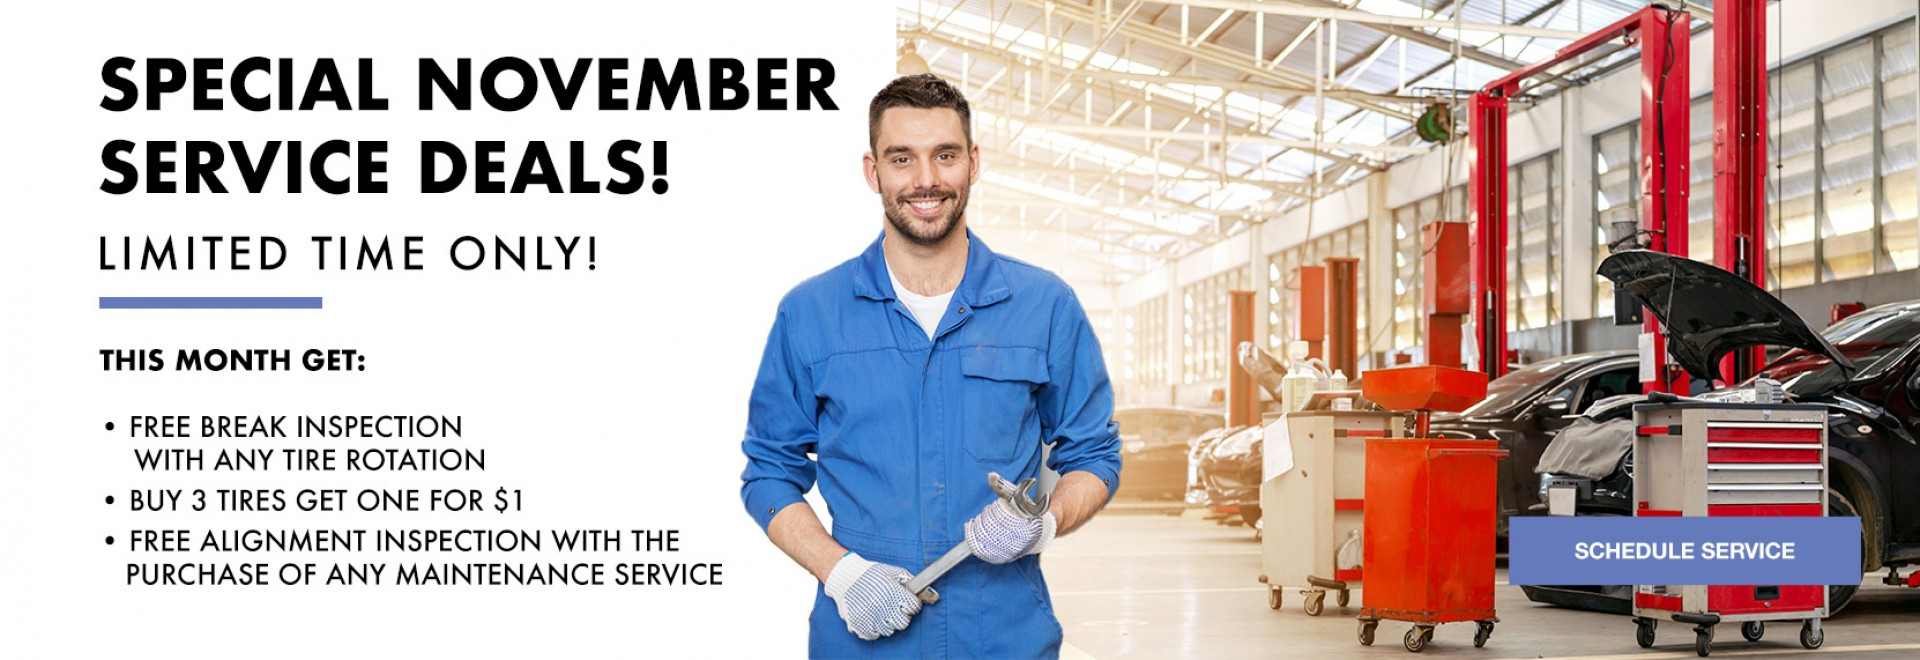 Special November Service Deals - Limited Time Only